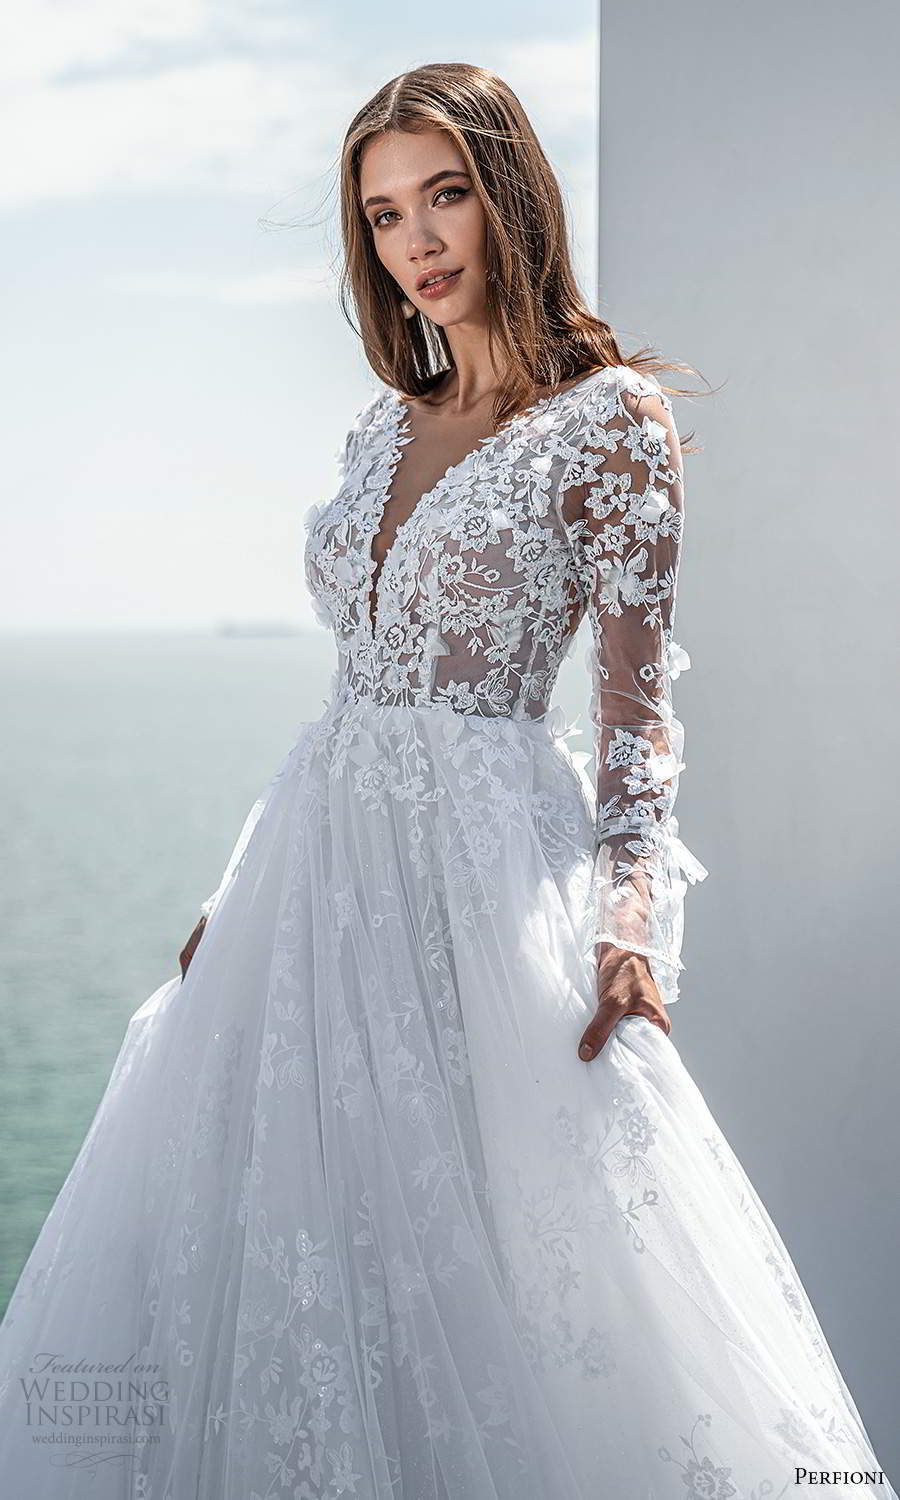 perfioni 2021 bridal sheer long sleeves plunging v neckline fully embellished lace a line ball gown wedding dress v back chapel train (9) mv